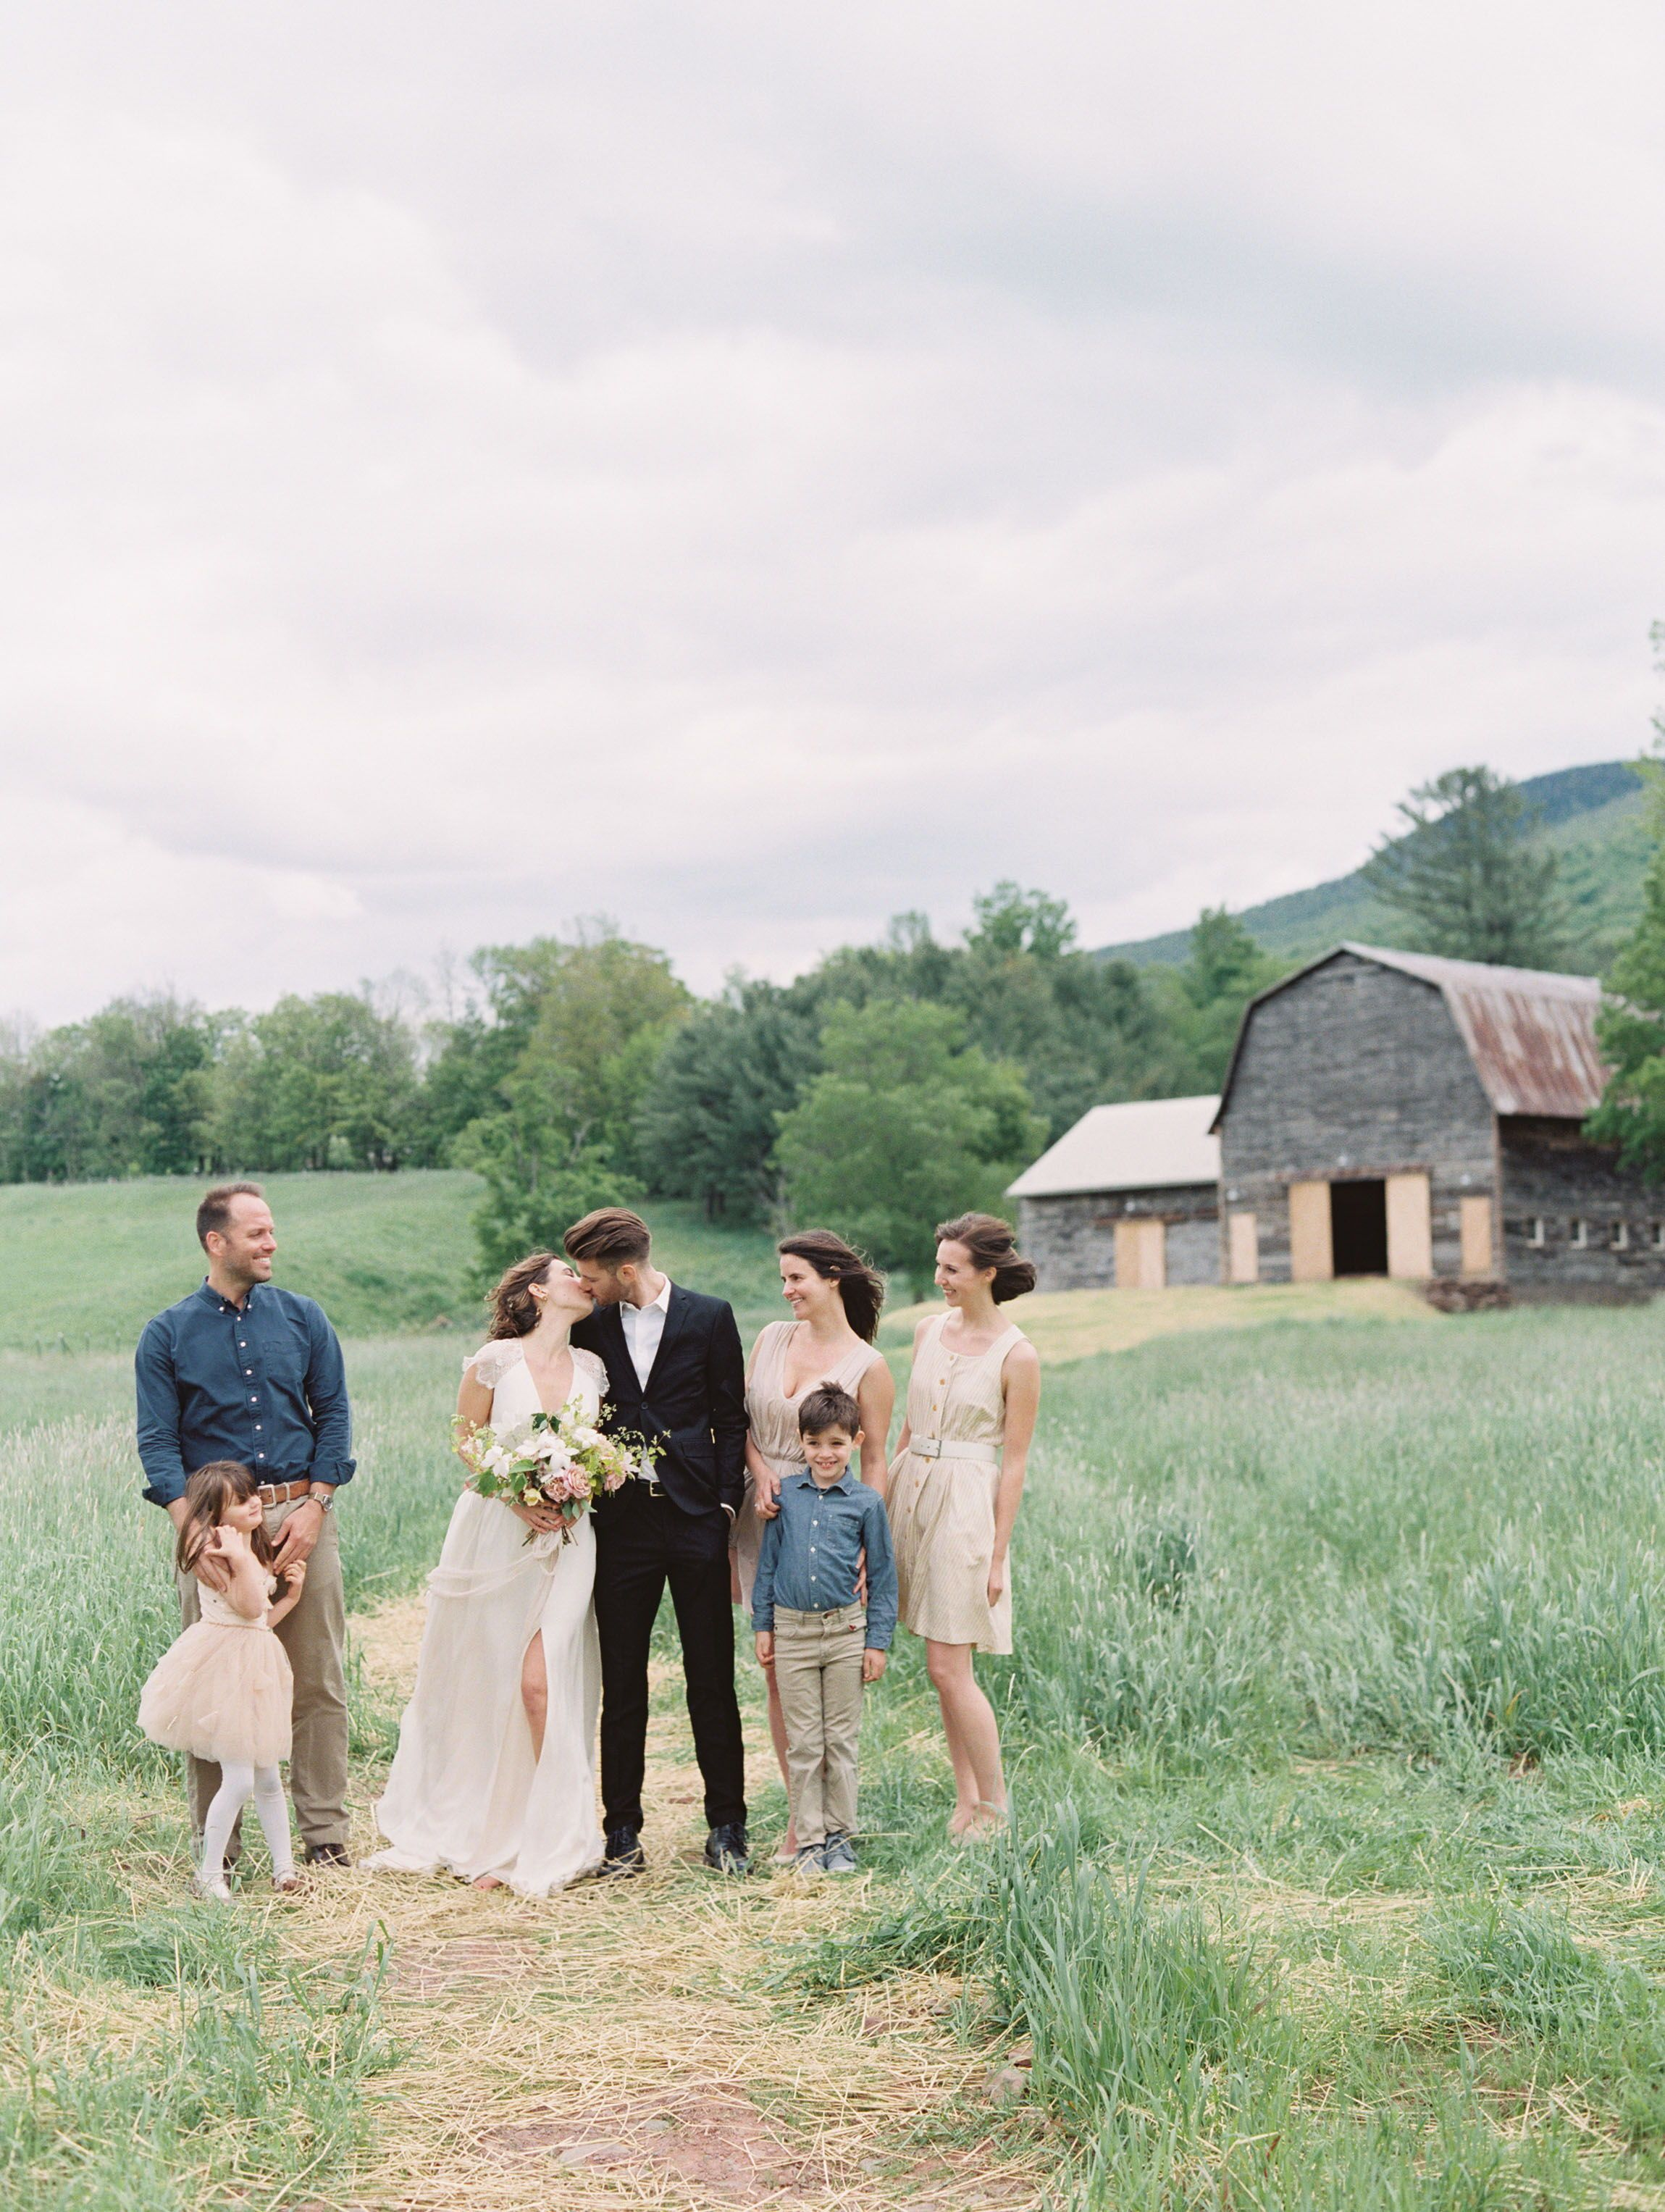 Field Wedding Farm Barn Beautiful Attire Outfit Inspiration Aesthetic Photos Ideas Ph Field Wedding Wedding Aisle Outdoor Rustic Wedding Photography